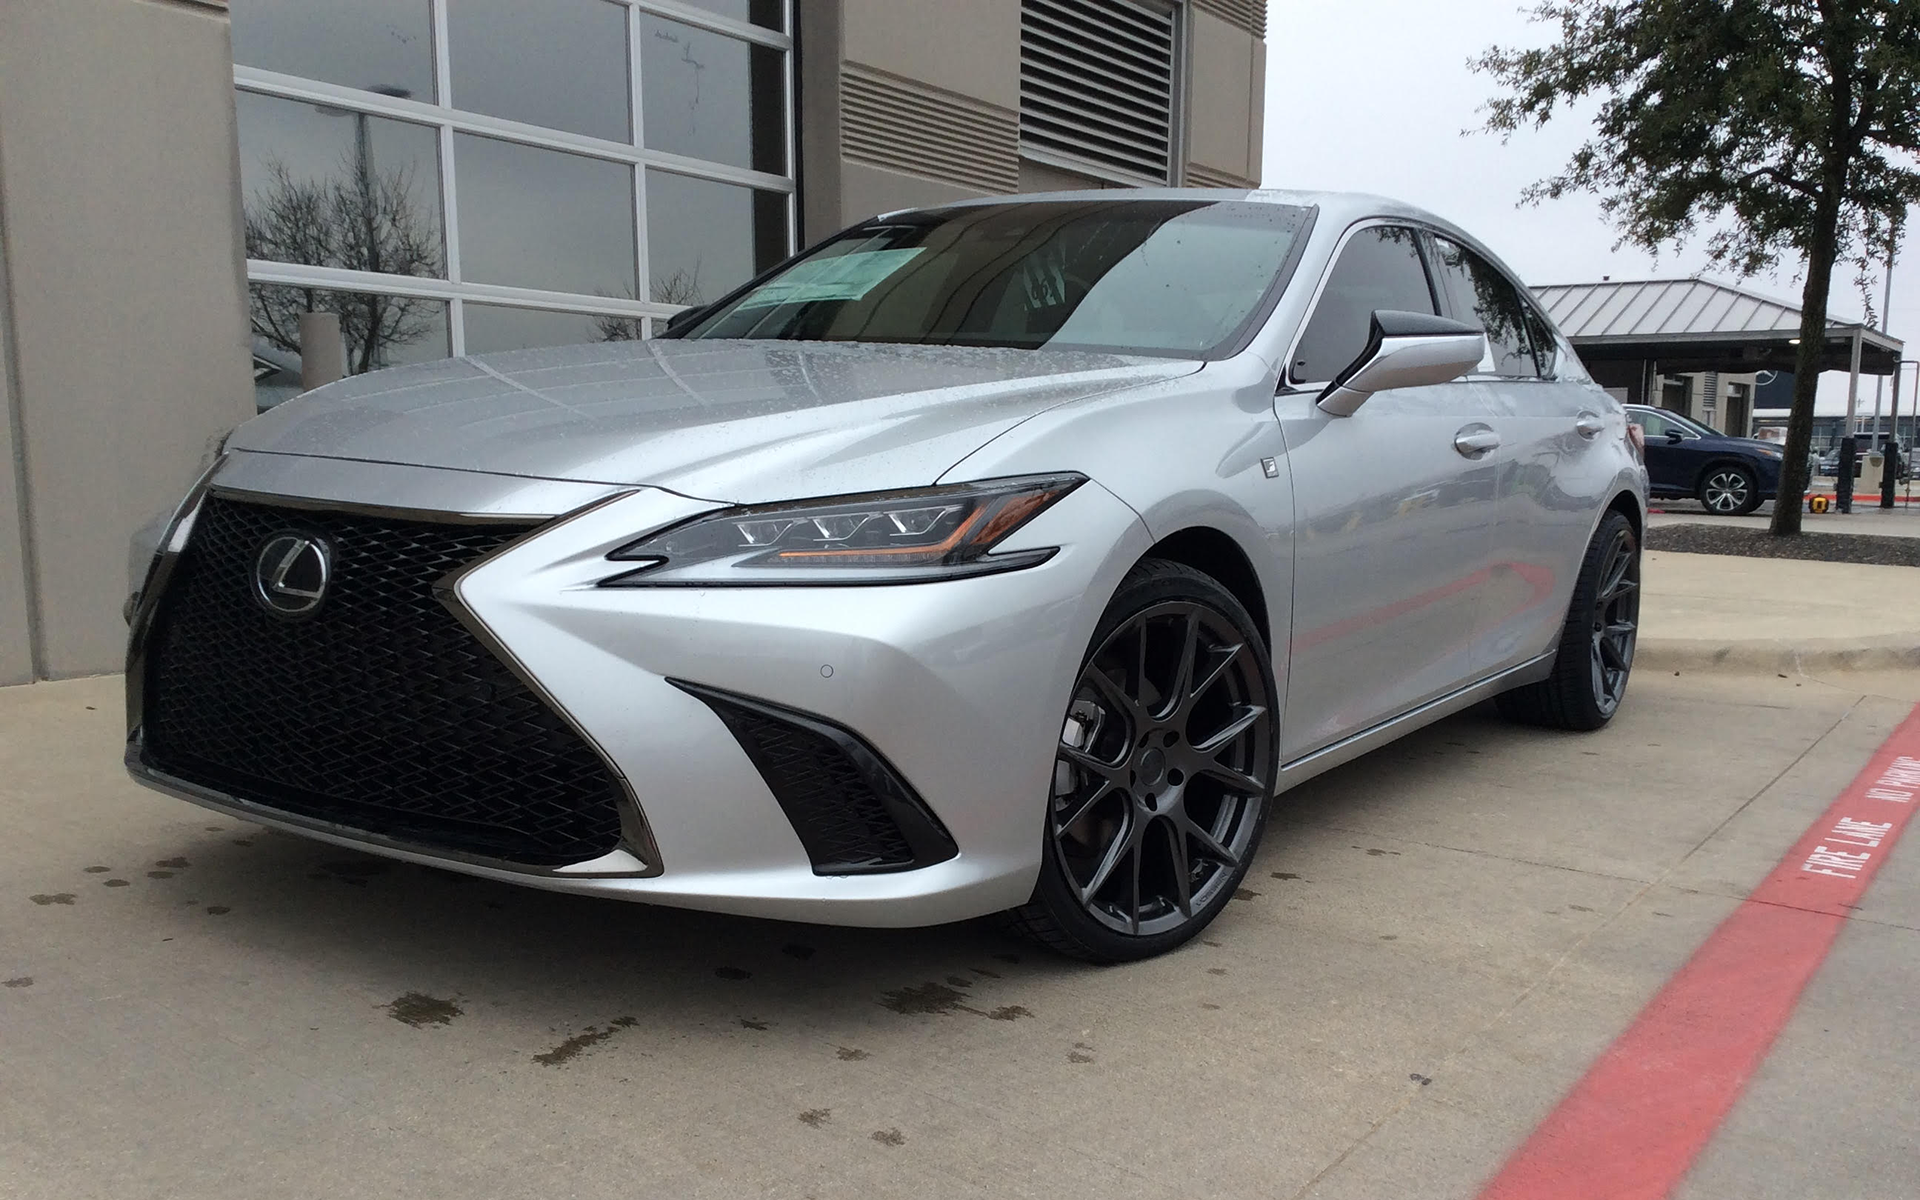 2019 Lexus ES350 Fsport with 20x9 front and 20x10.5 rear